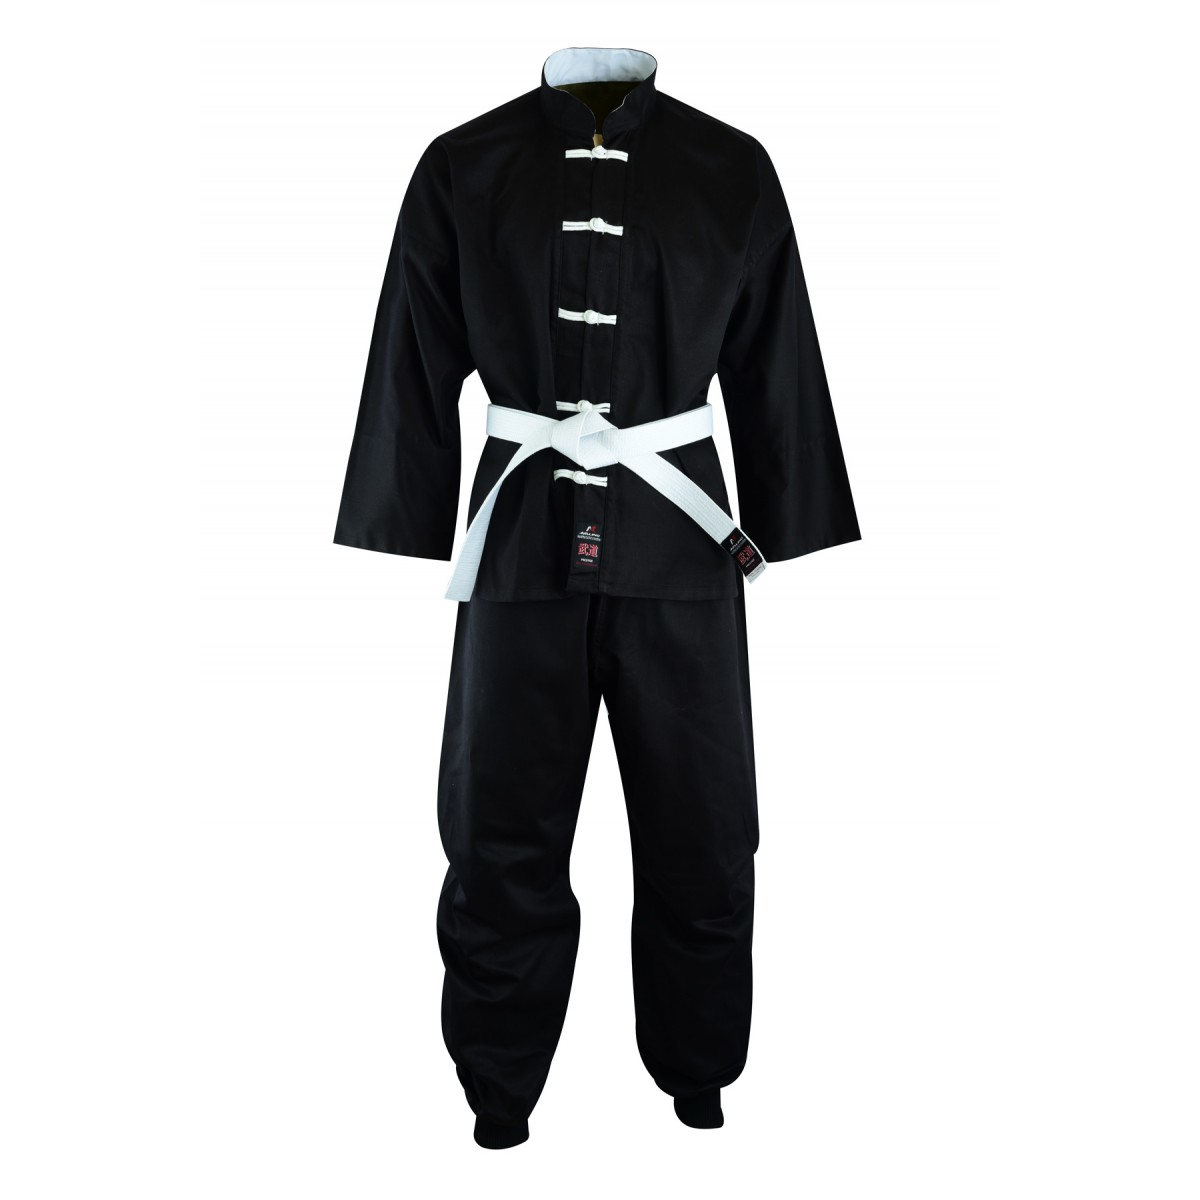 Malino Kids Kung Fu Suit Black/White Cotton - 8oz